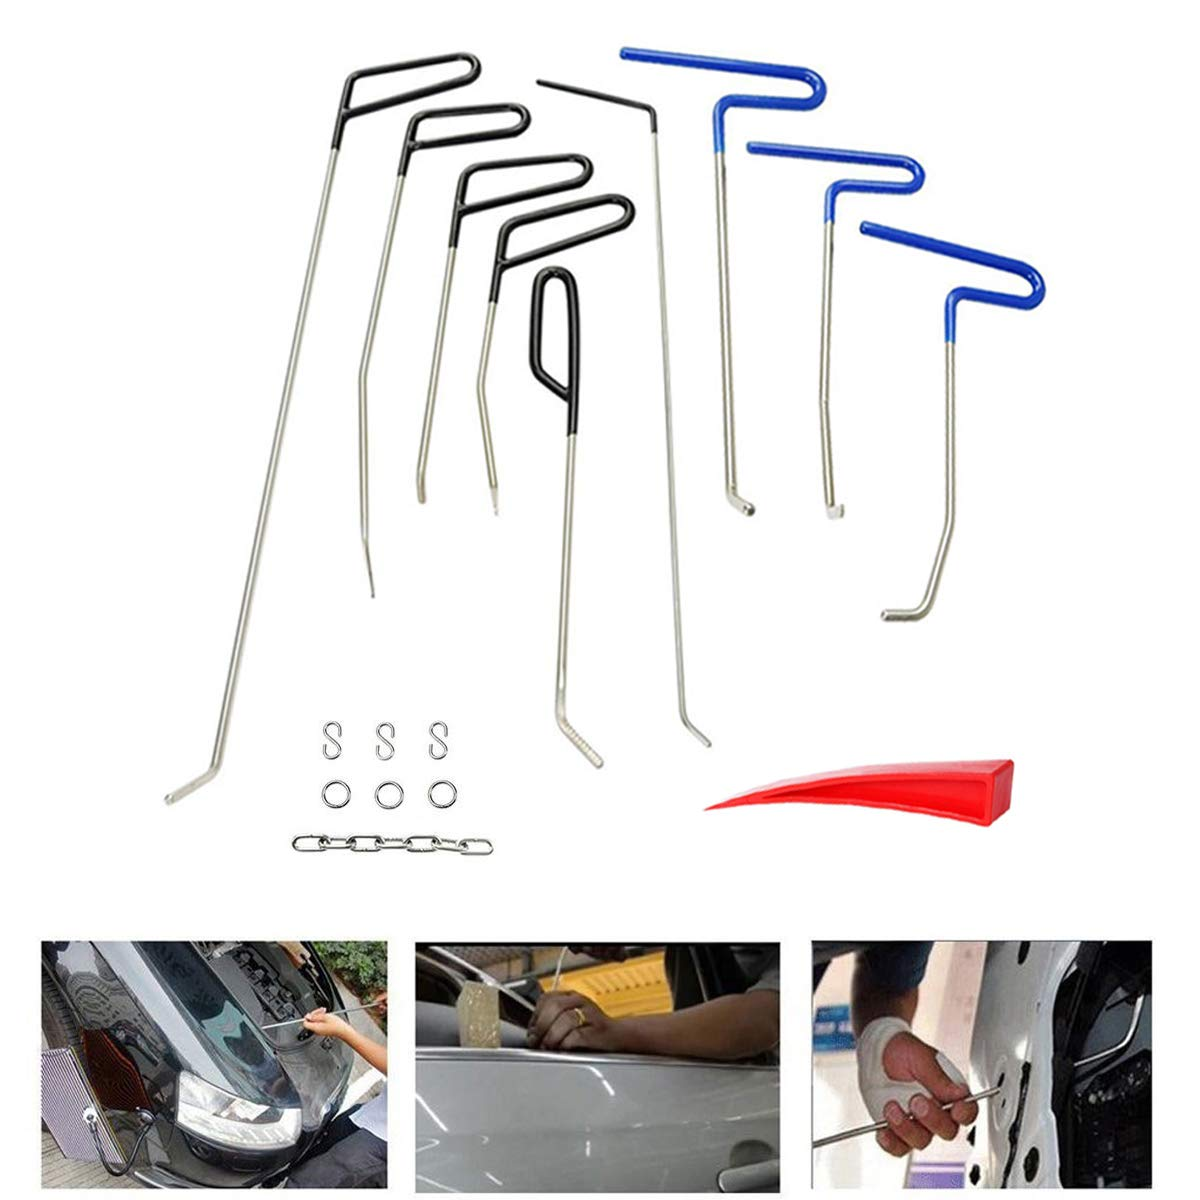 JMgist Dent Removal Rods Tools Kit PDR 17pcs Removal Paintless Car Dent Repair Rods Kit for Car Body Door Dings Hail Damage Repair